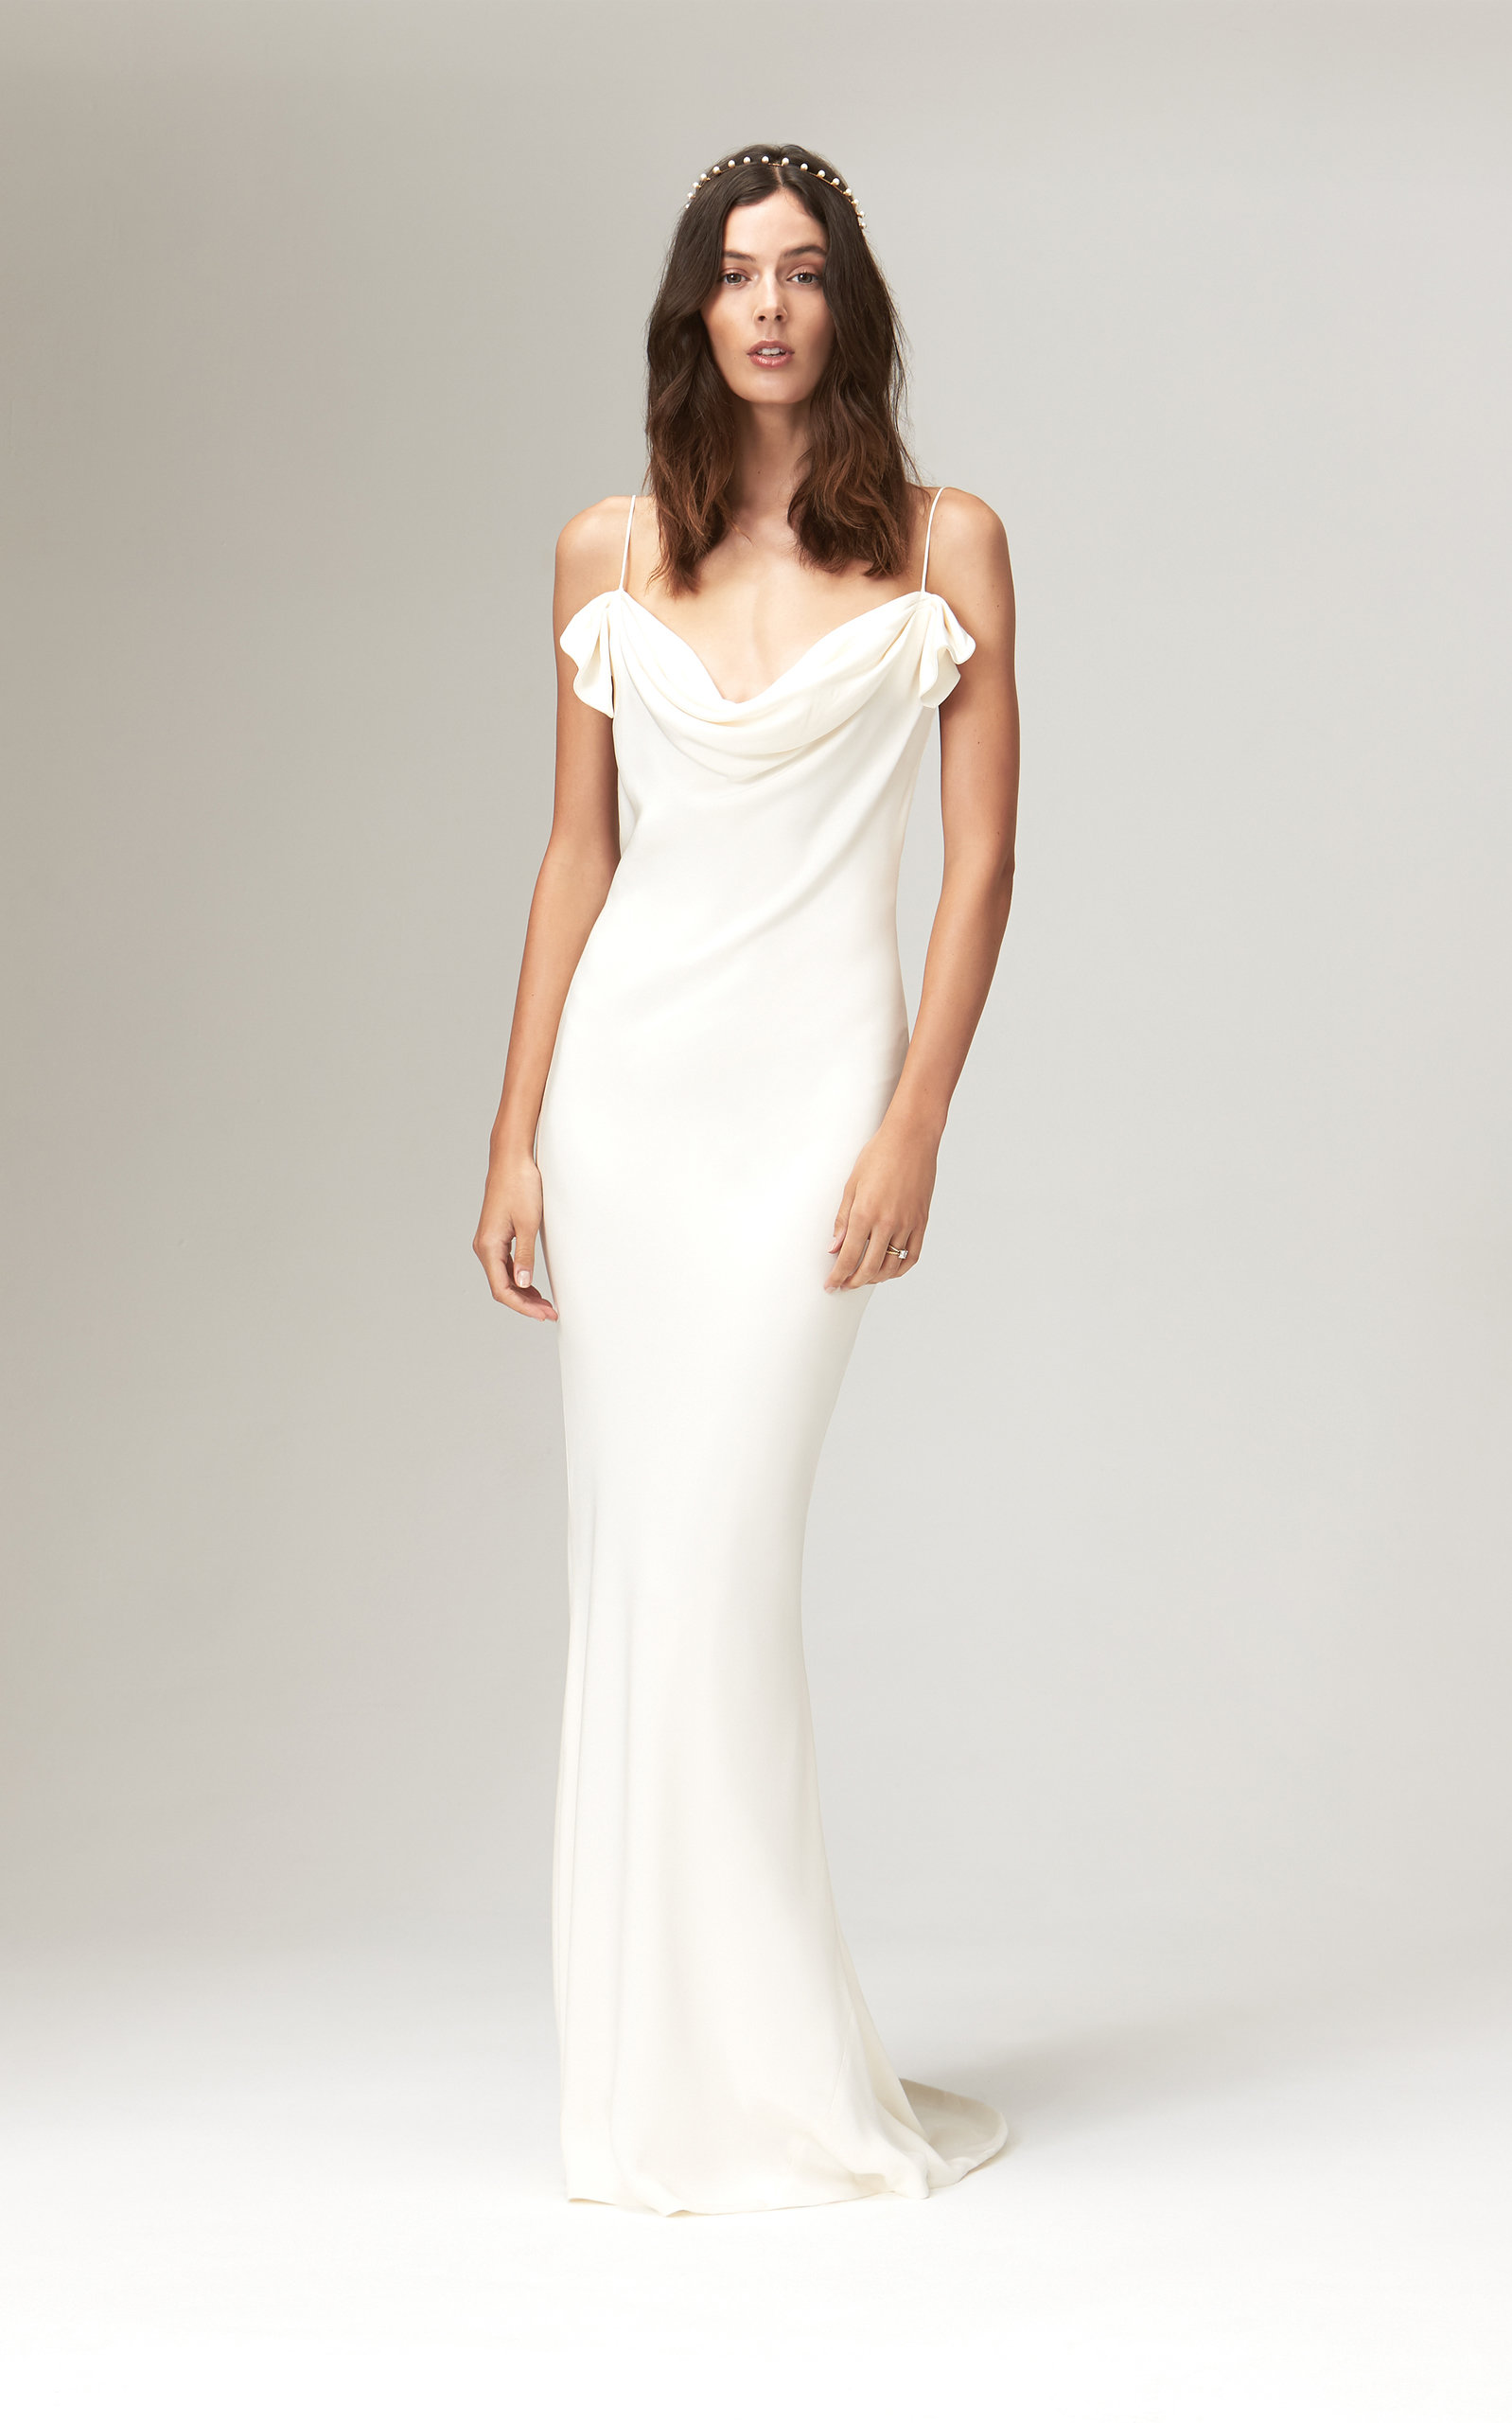 Savannah Miller - Chloe Silk Bias Cut Cowl Neck Gown